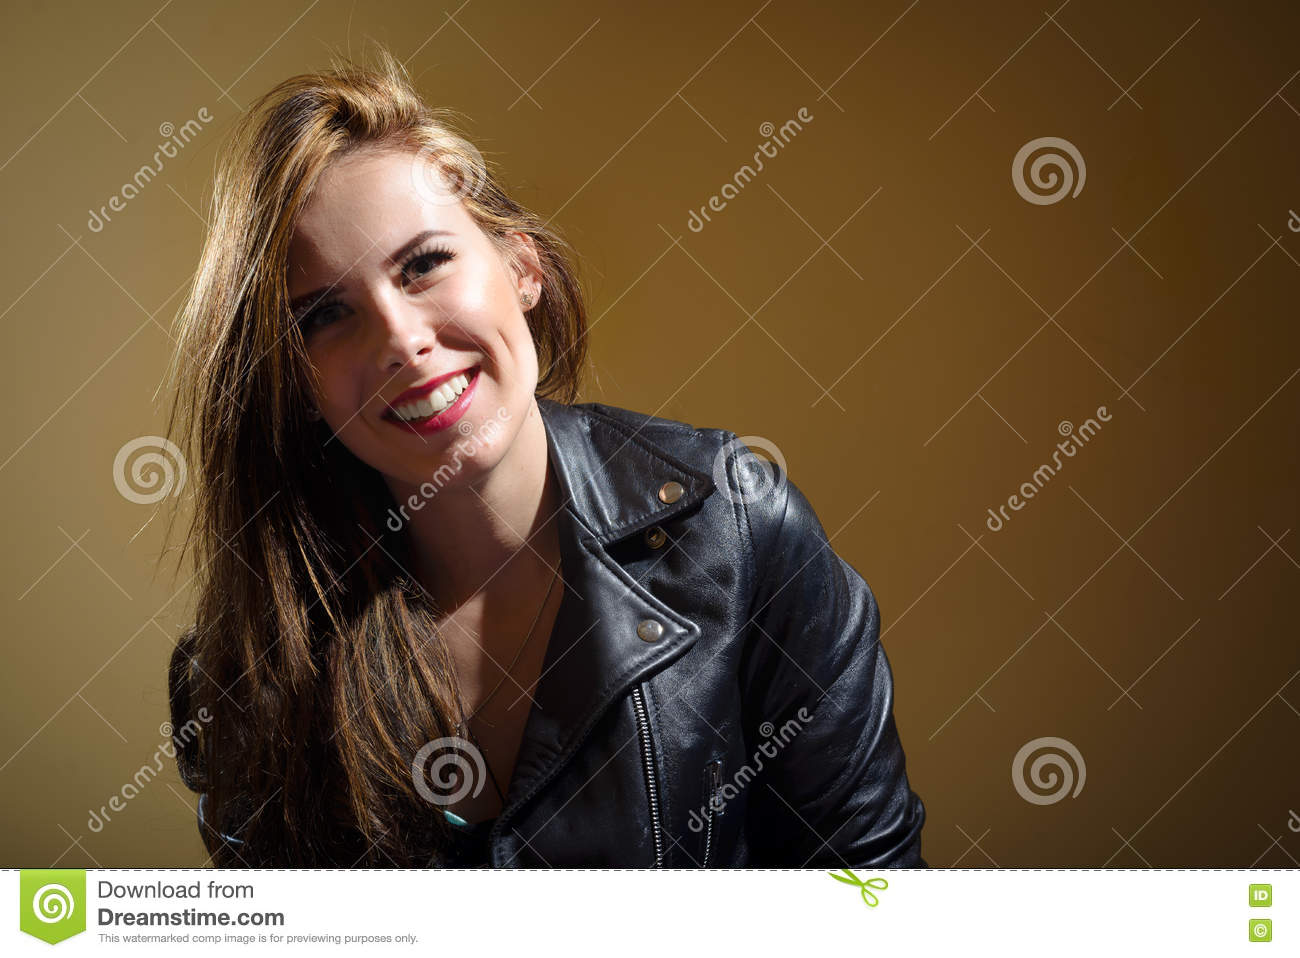 Happy young woman in black leather jacket on brown background